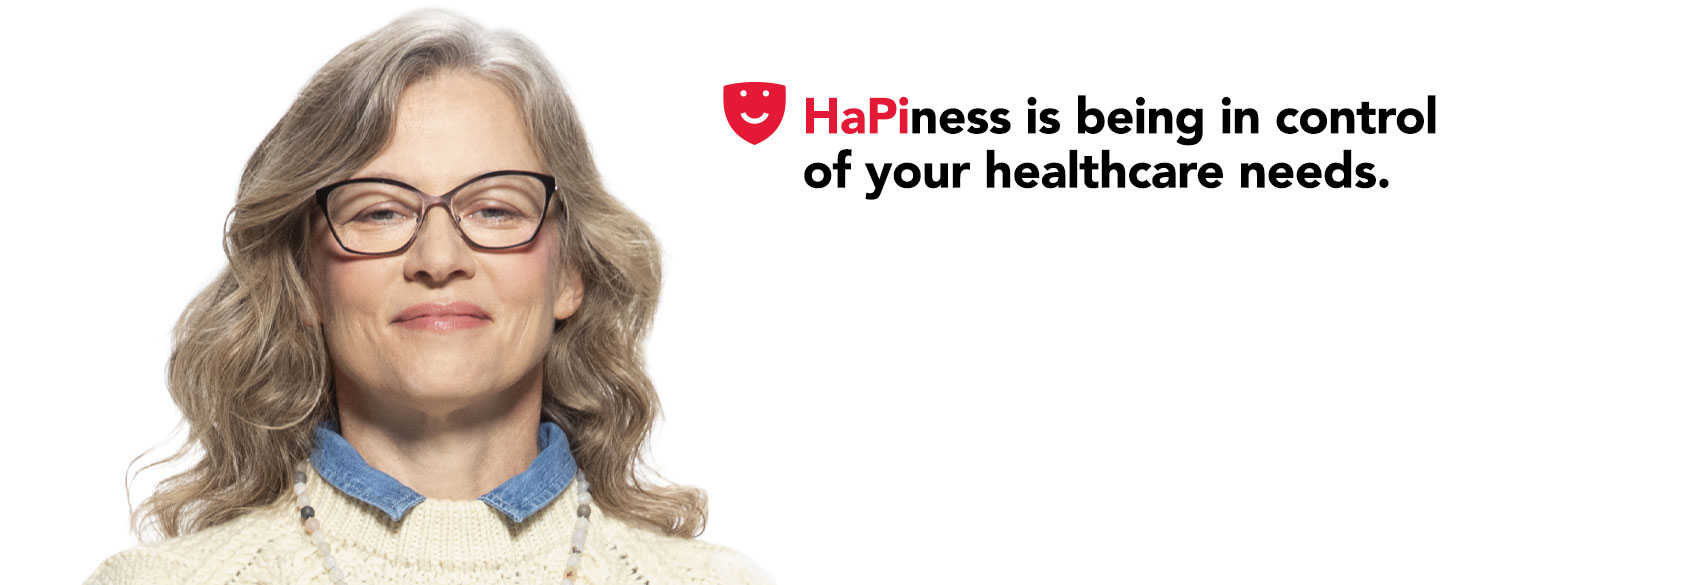 Hapiness is being in control of your healthcare needs